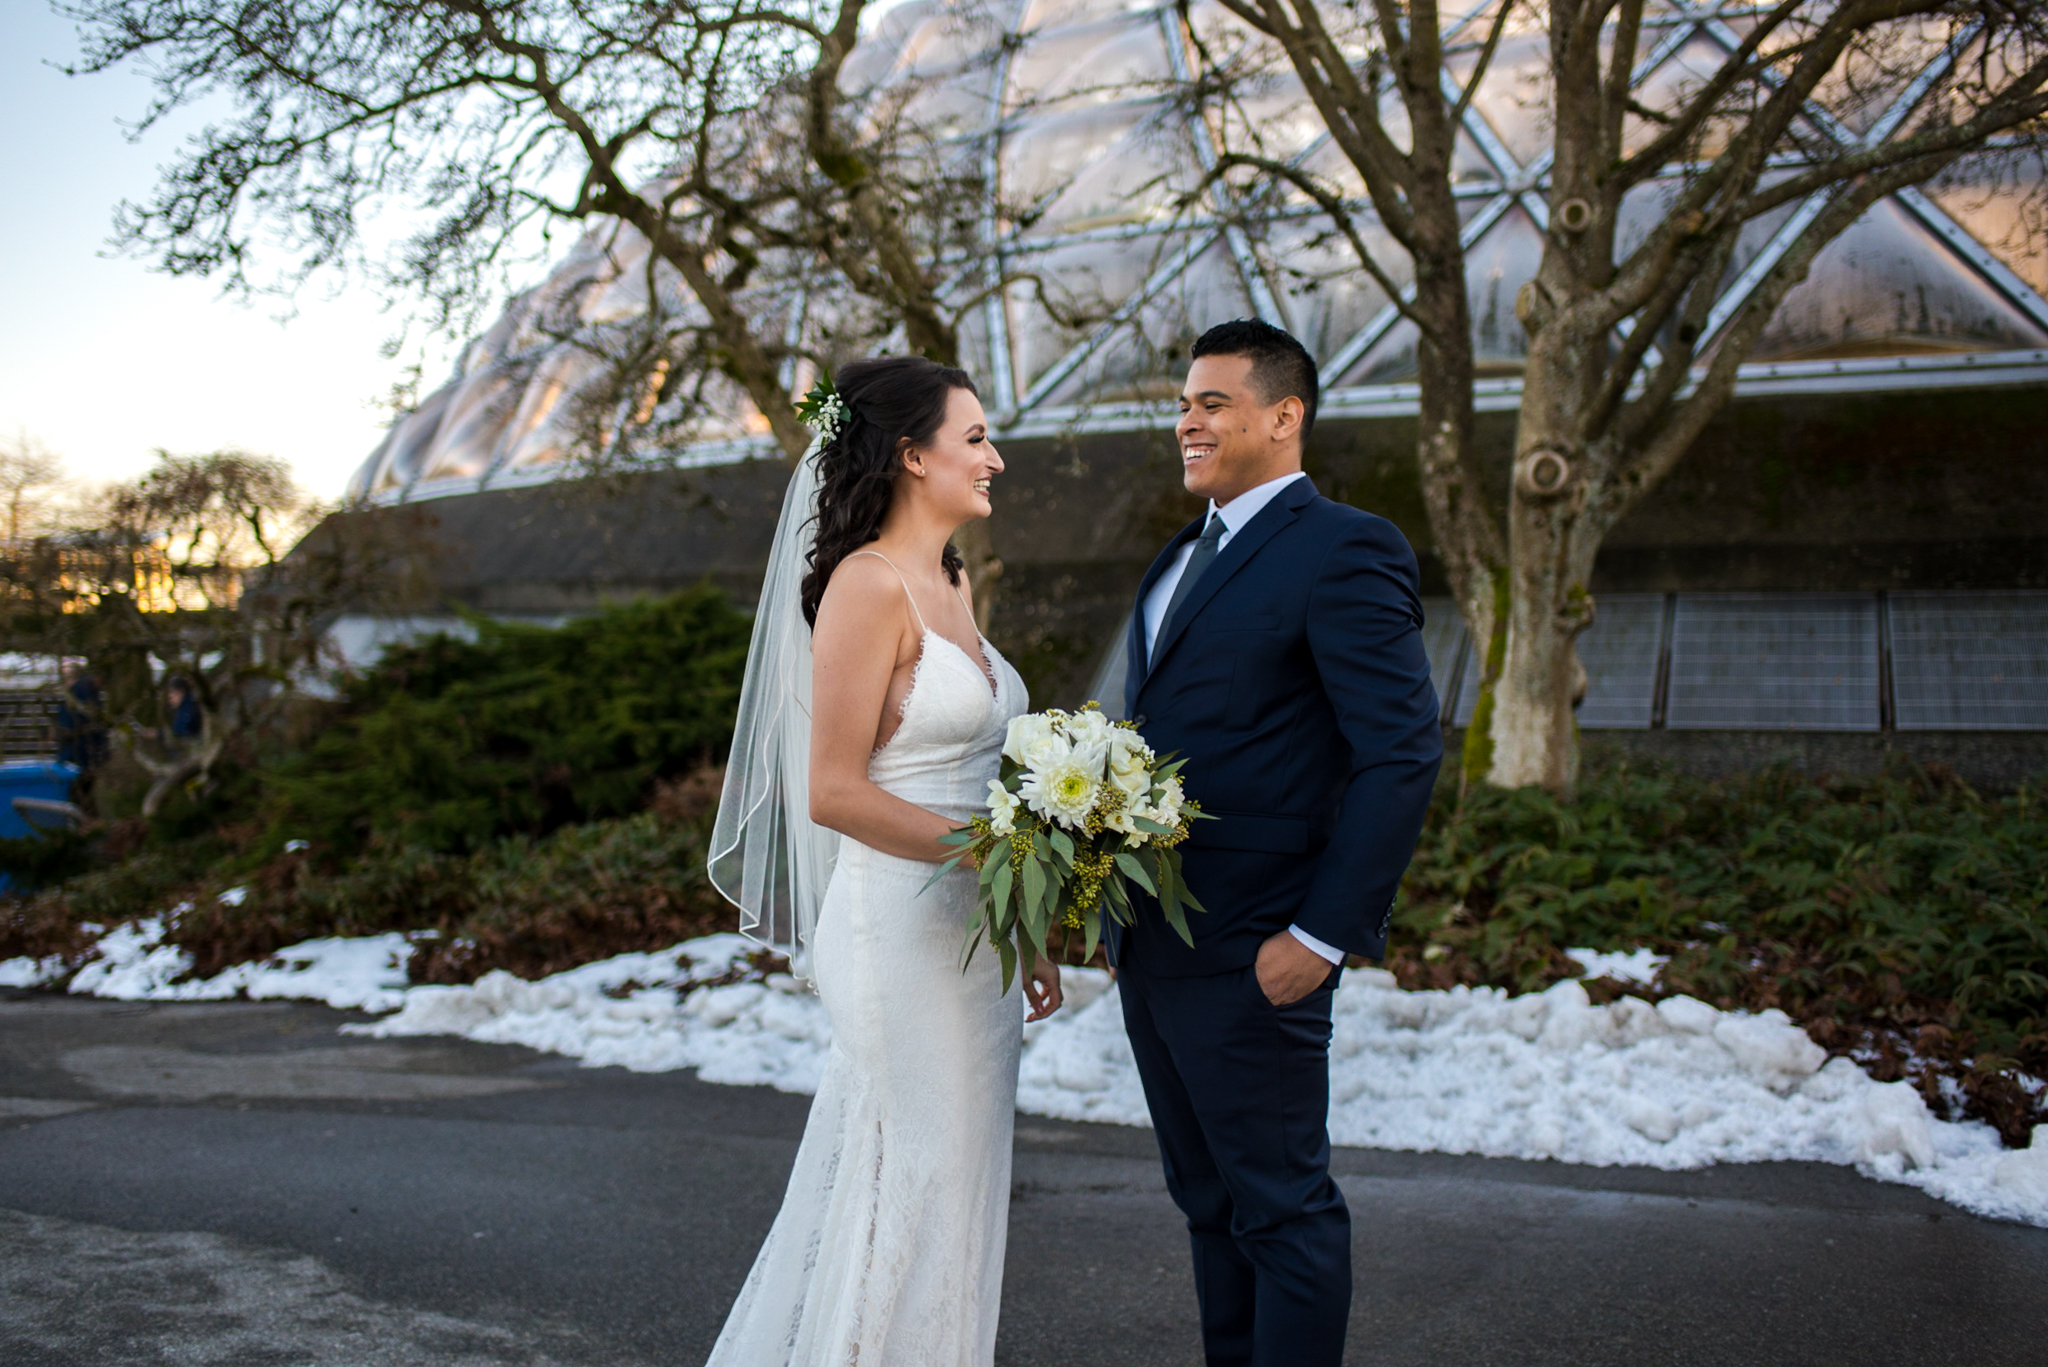 Queen Elizabeth Park Wedding Photographer-13.jpg